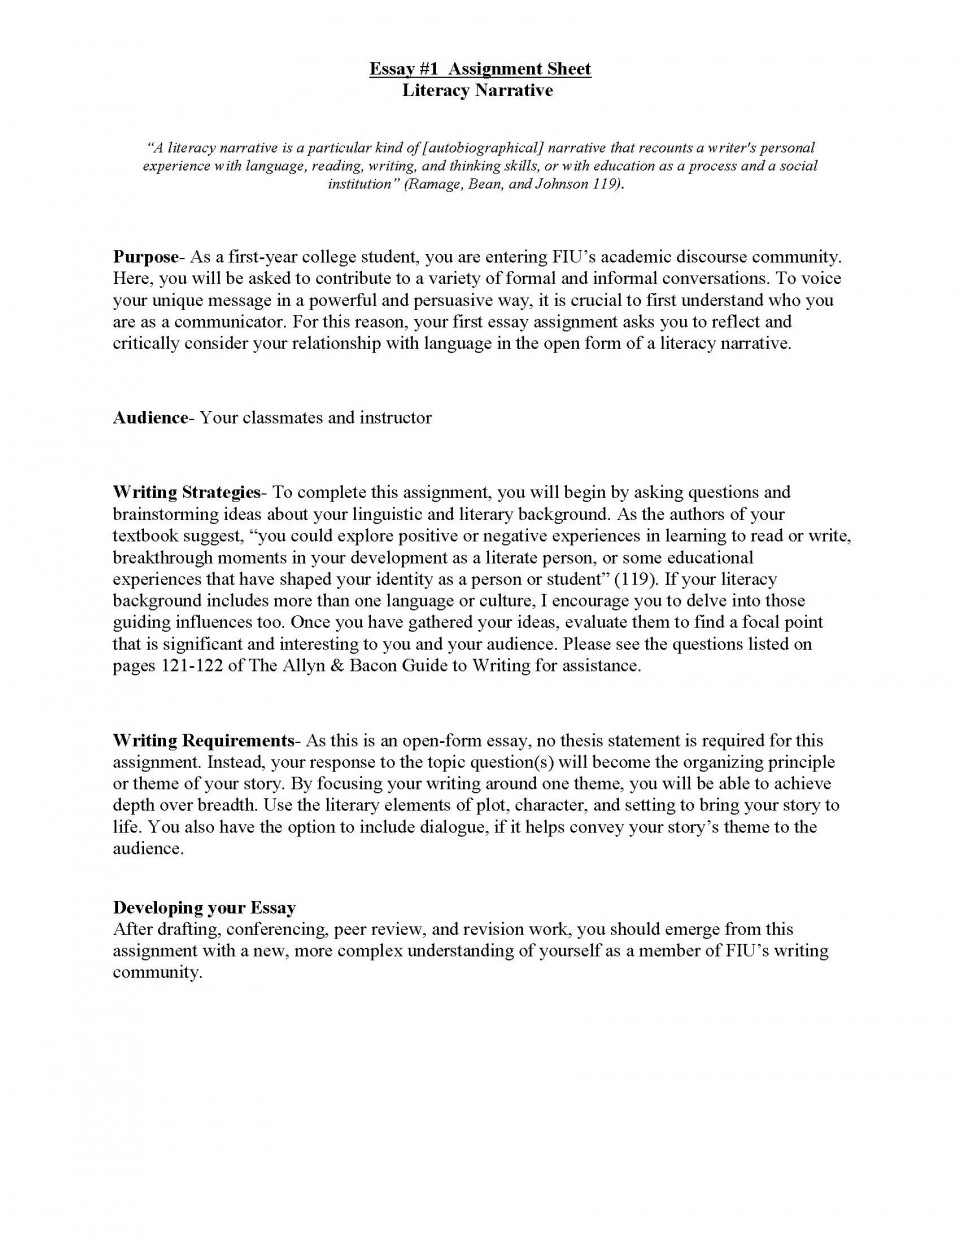 002 Essay Example Literacy Narrative Unit Assignment Spring 2012 Page 1 Awful Paper Topics Test Examples 960